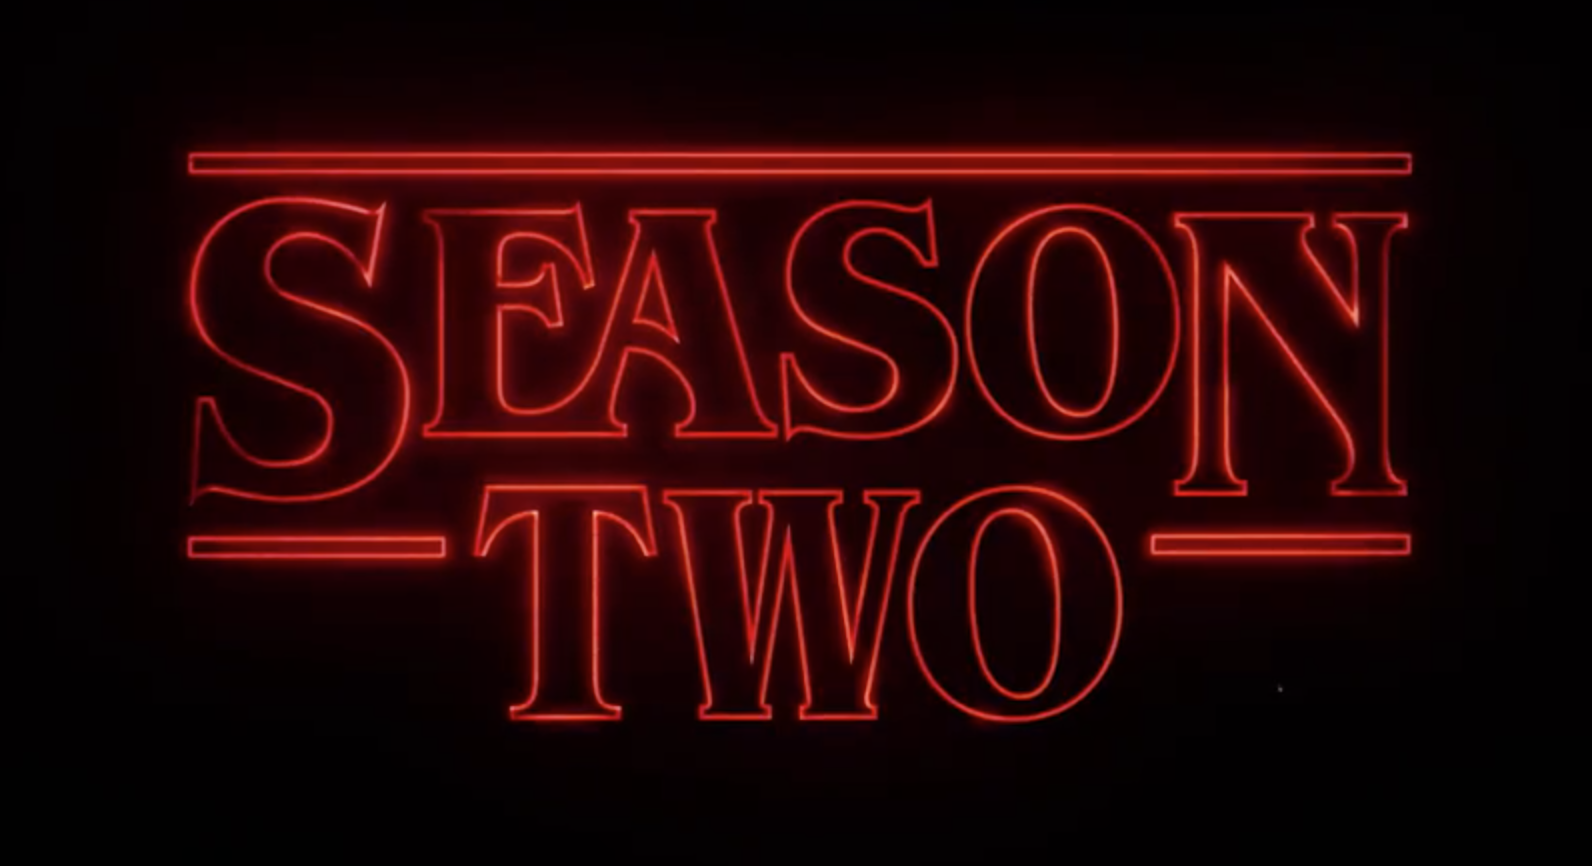 'Stranger Things' Season 2 Confirmed for 2017